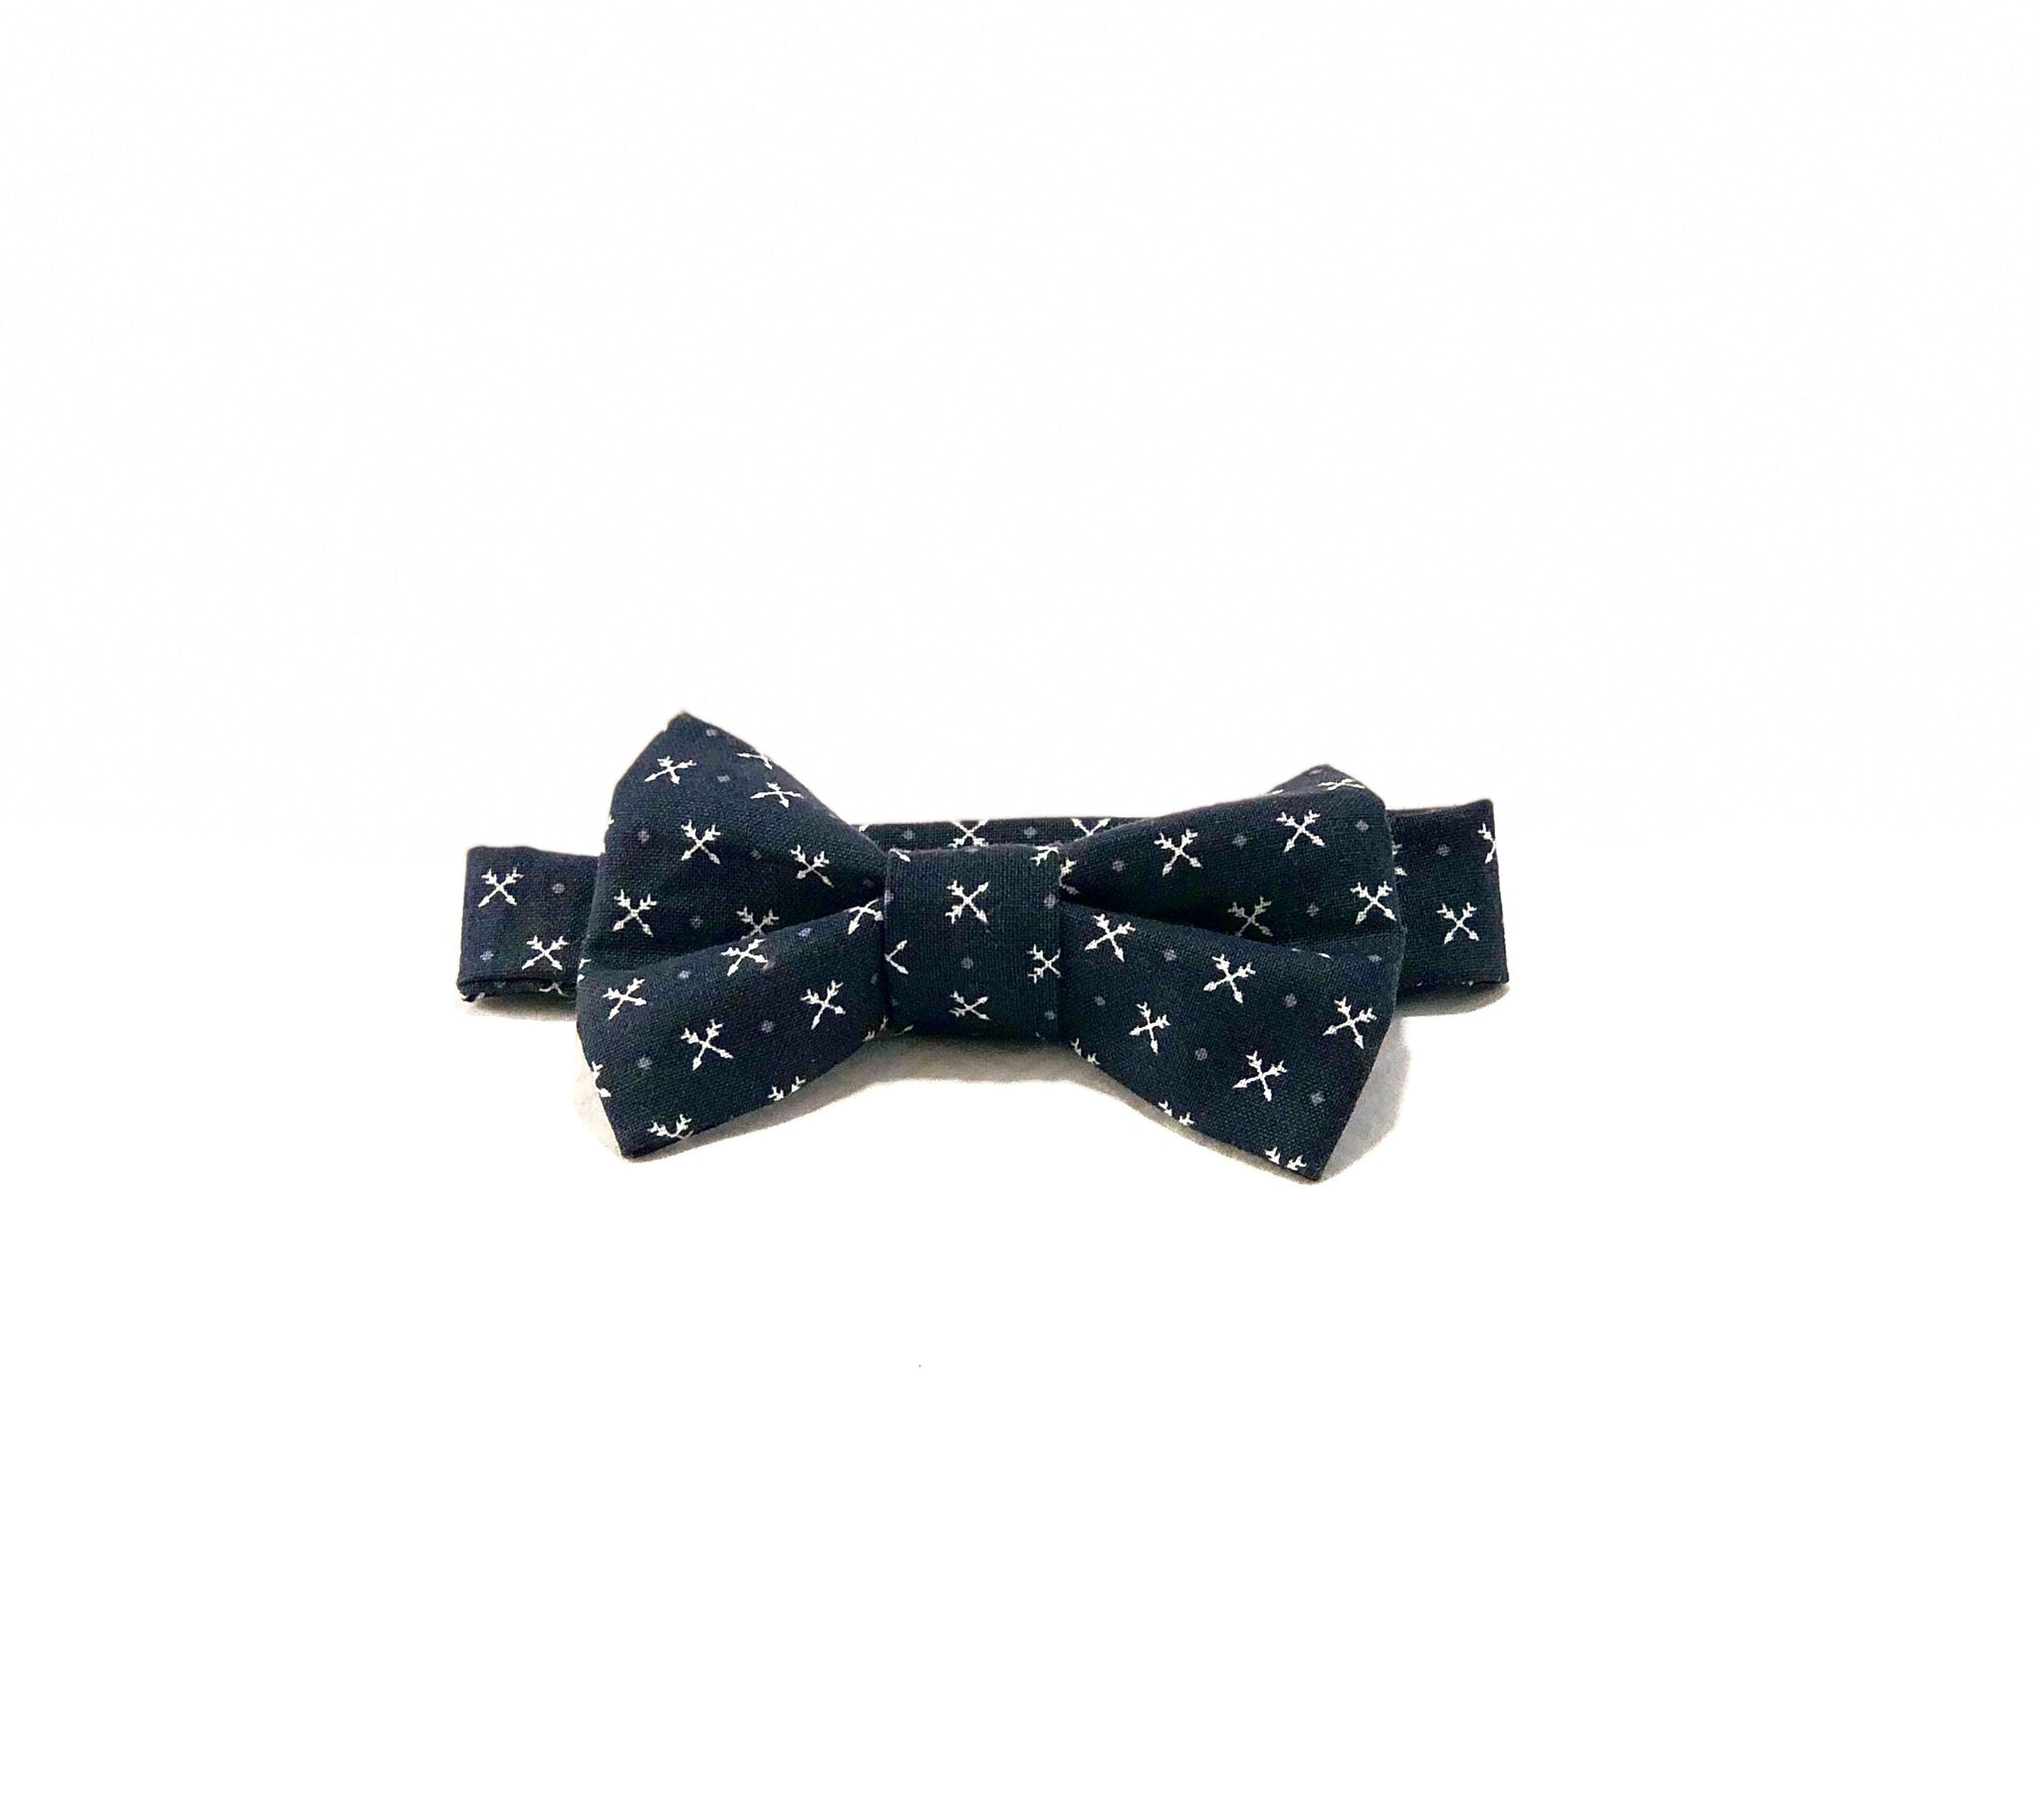 Arrows-Of-Friendship-Bow-Tie-Laying